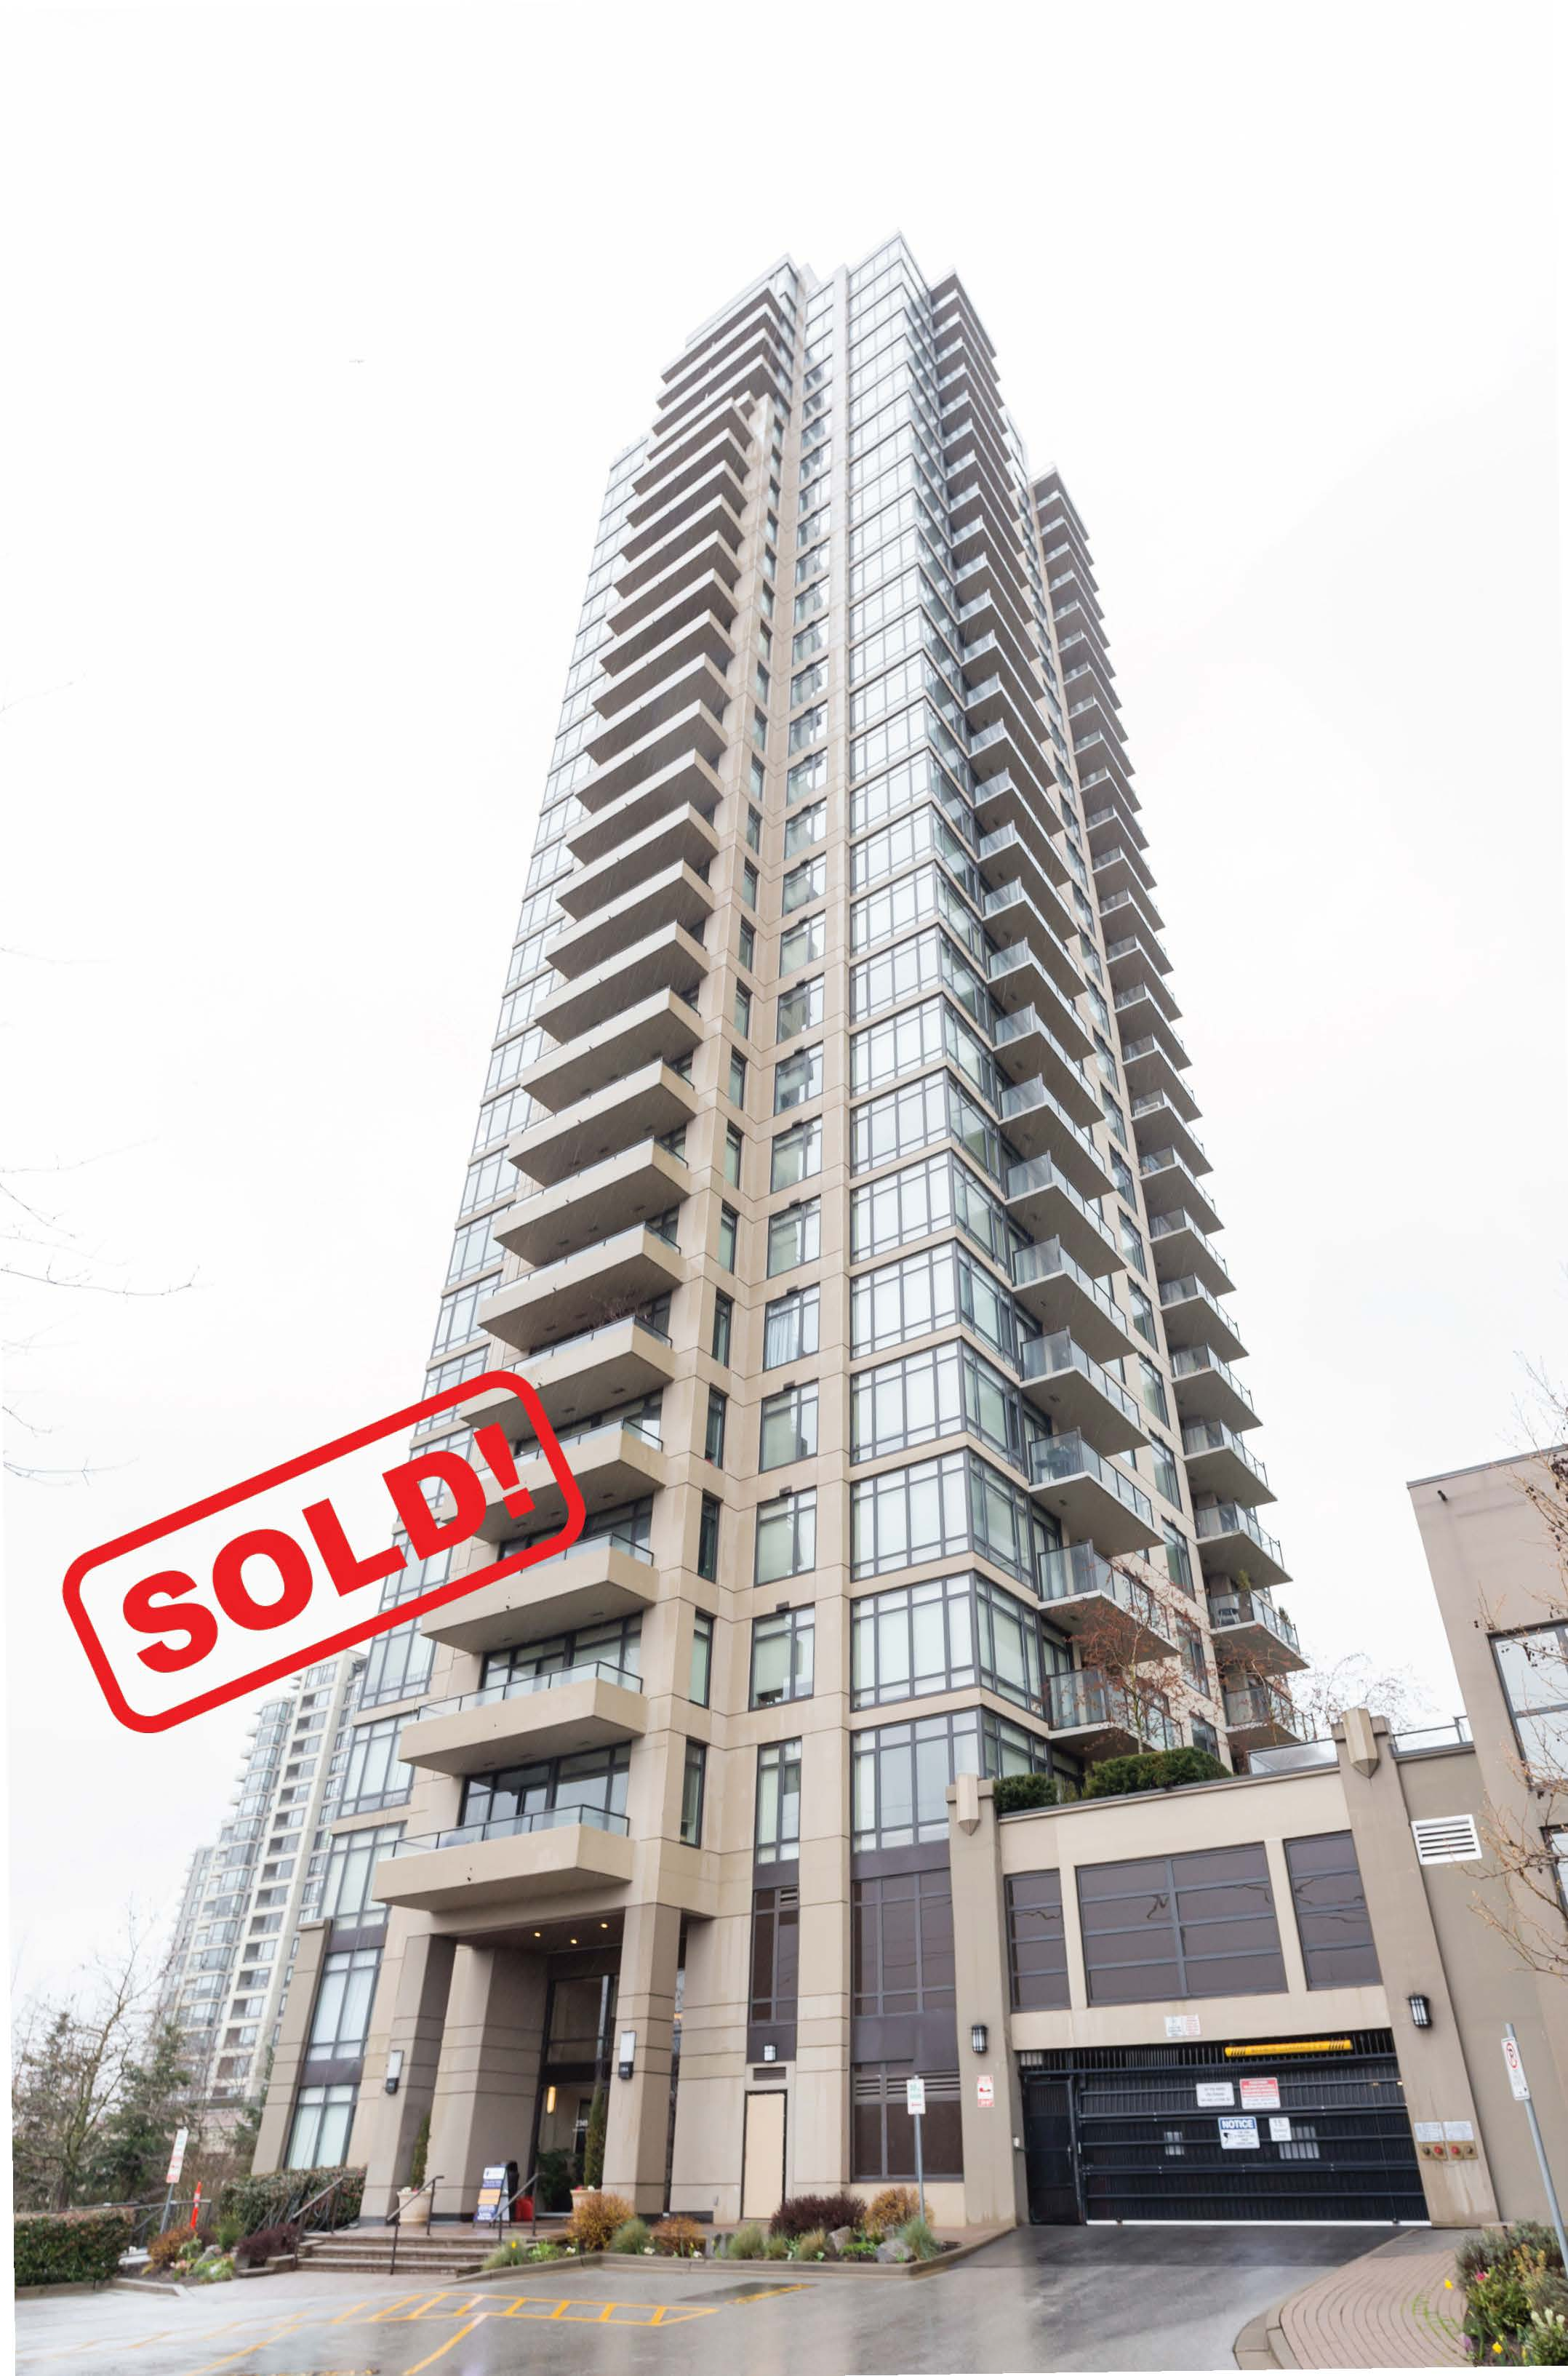 2003-2345 MADISON AVENUE     SOLD FOR: $730,000  2 BED | 2 BATH | 873 SF